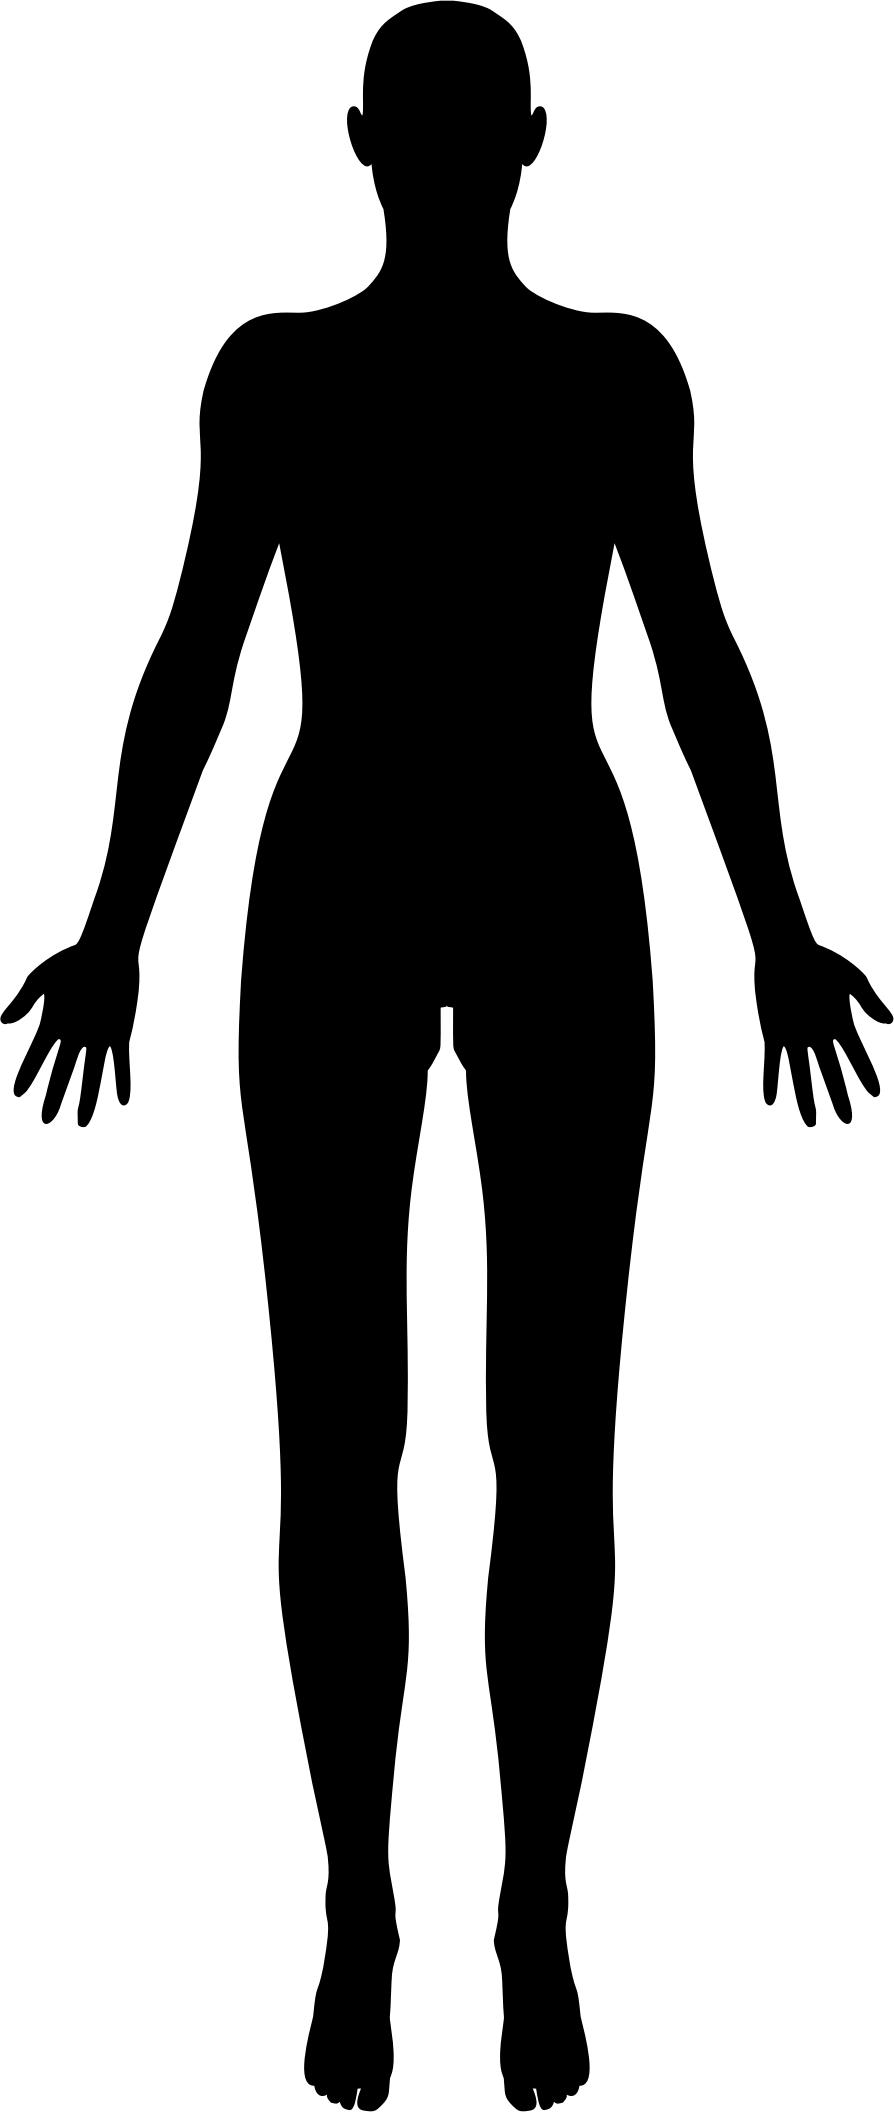 894x2112 Female Body Silhouette Icons Png